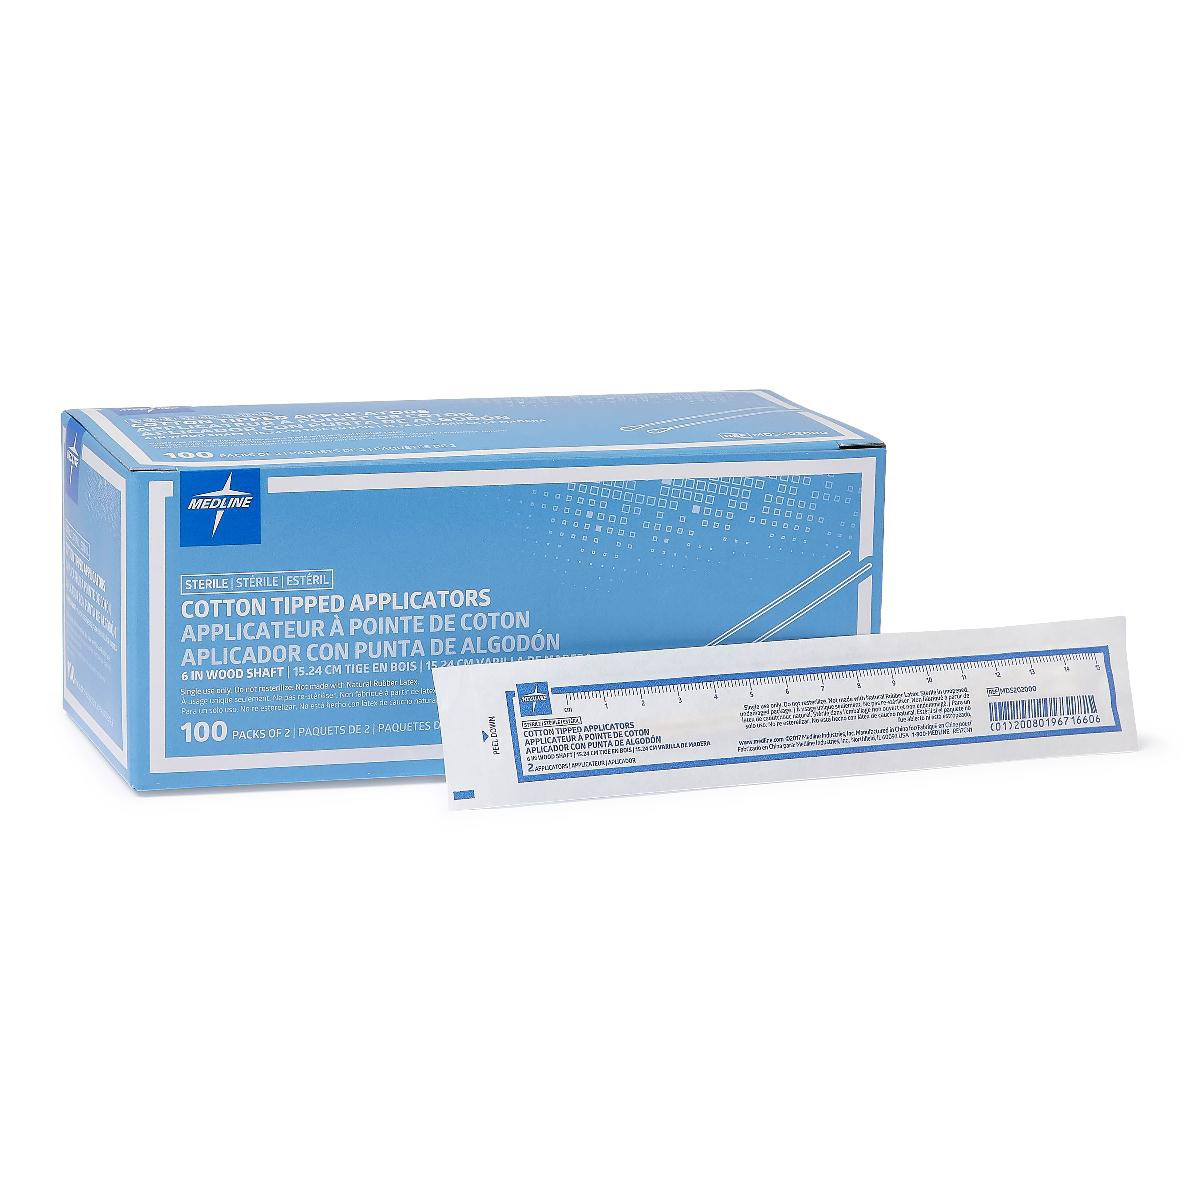 medline sterile cotton tipped applicators plastic or wood c1e